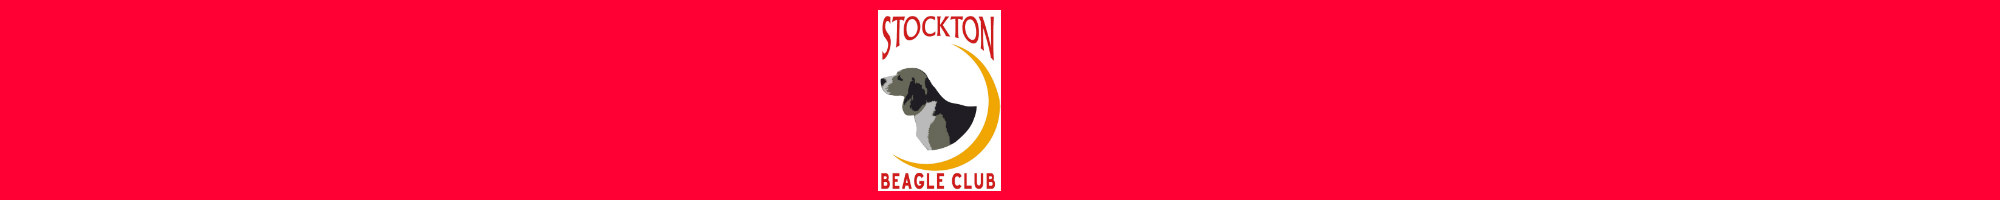 Stockton Beagle Club